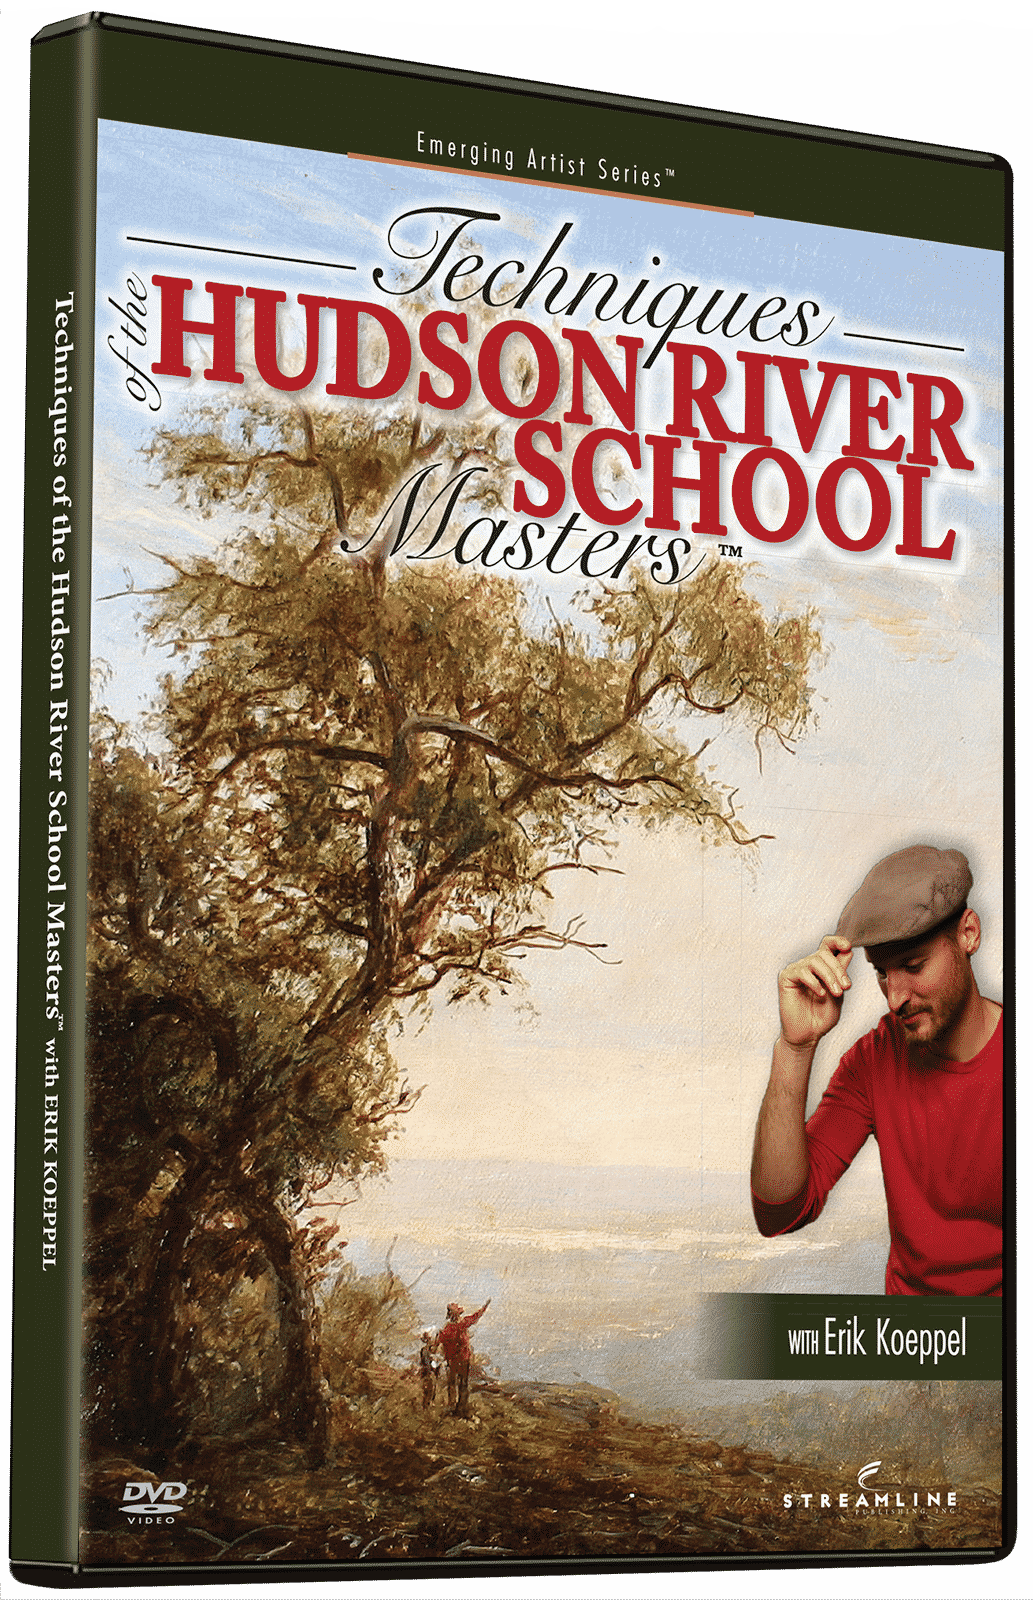 Erik Koeppel: Techniques of the Hudson River School Masters